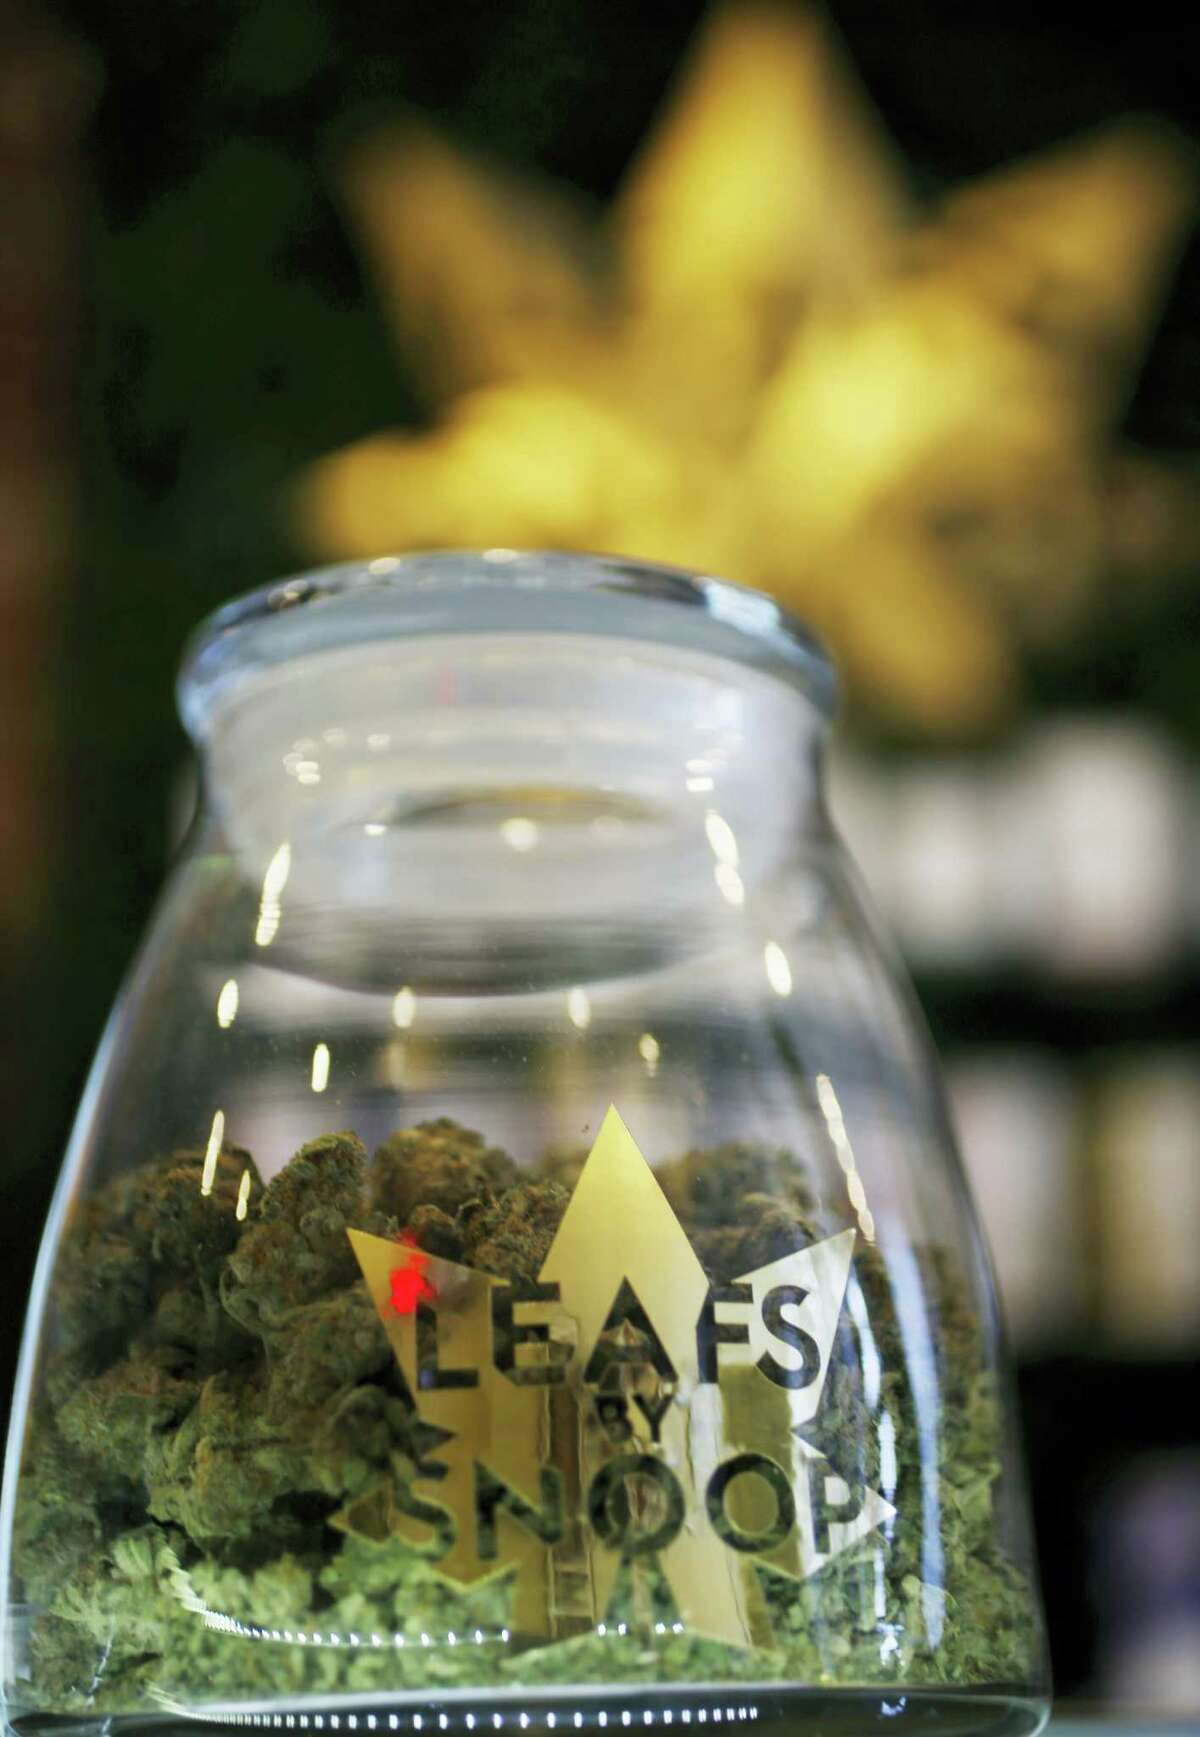 The label on a jar in the marijuana line marketed by rapper Snoop Dogg in one of the LivWell marijuana chain's outlets south of downtown Denver.